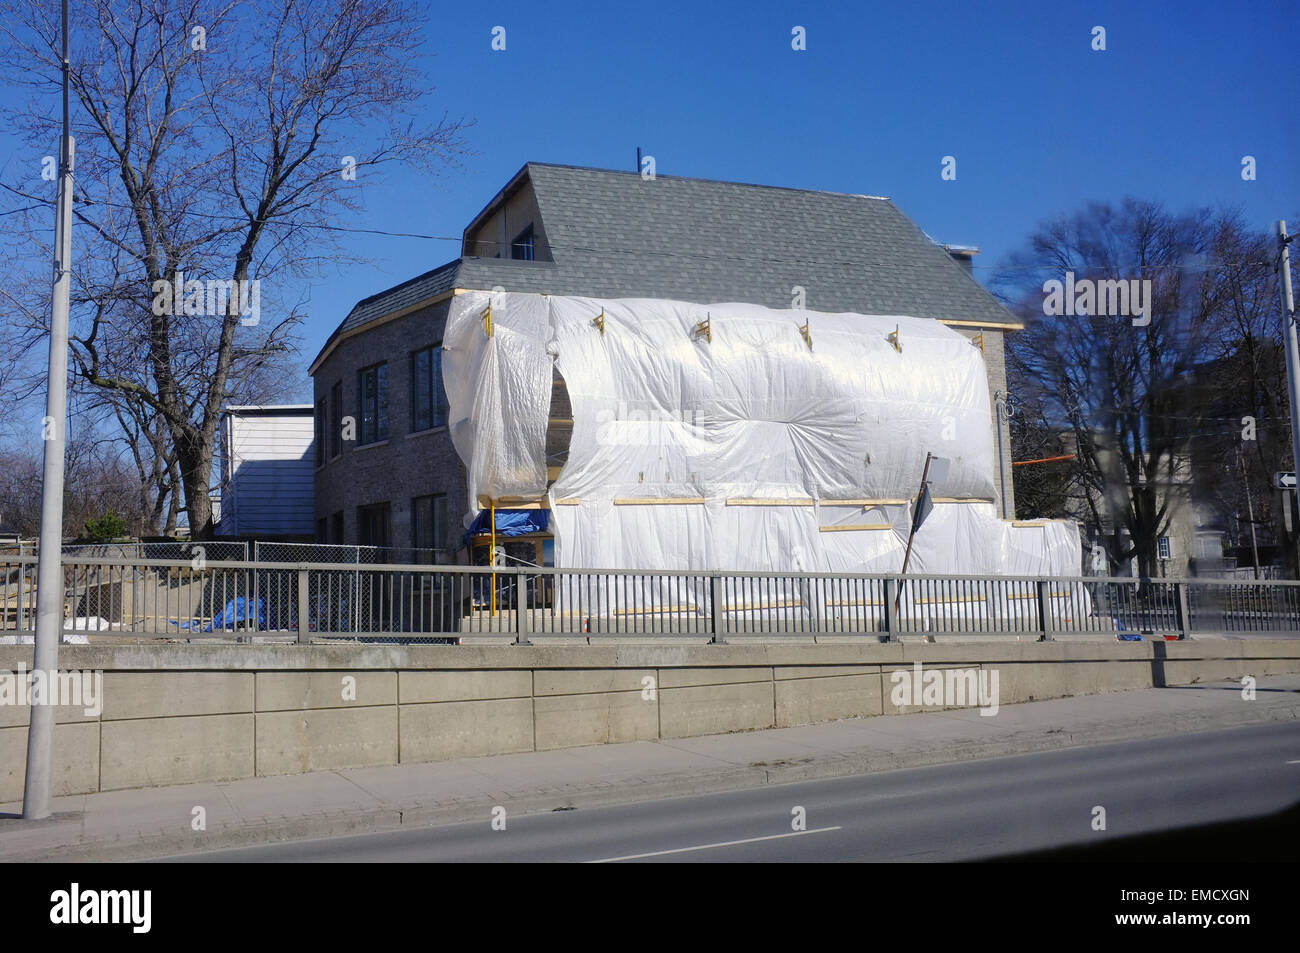 A Canadian house half covered in white plastic sheeting in Ontario. - Stock Image